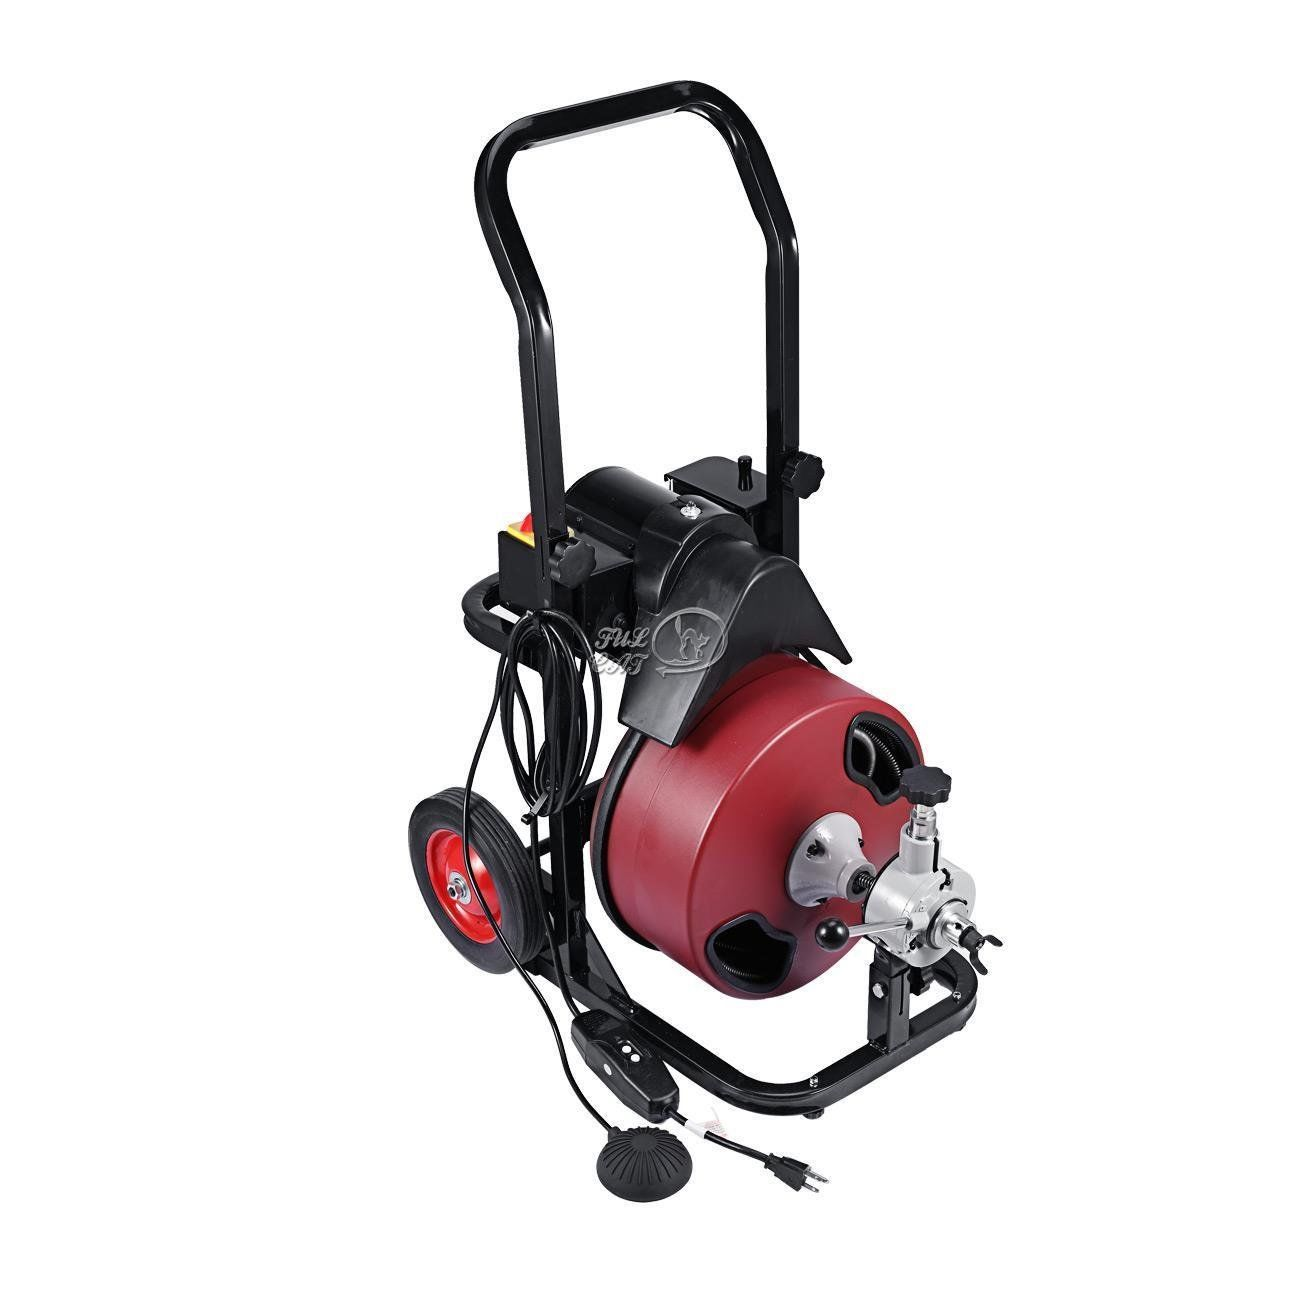 Portable 50 Ft Electric Drain Cleaner Sewer Snake W Cutter